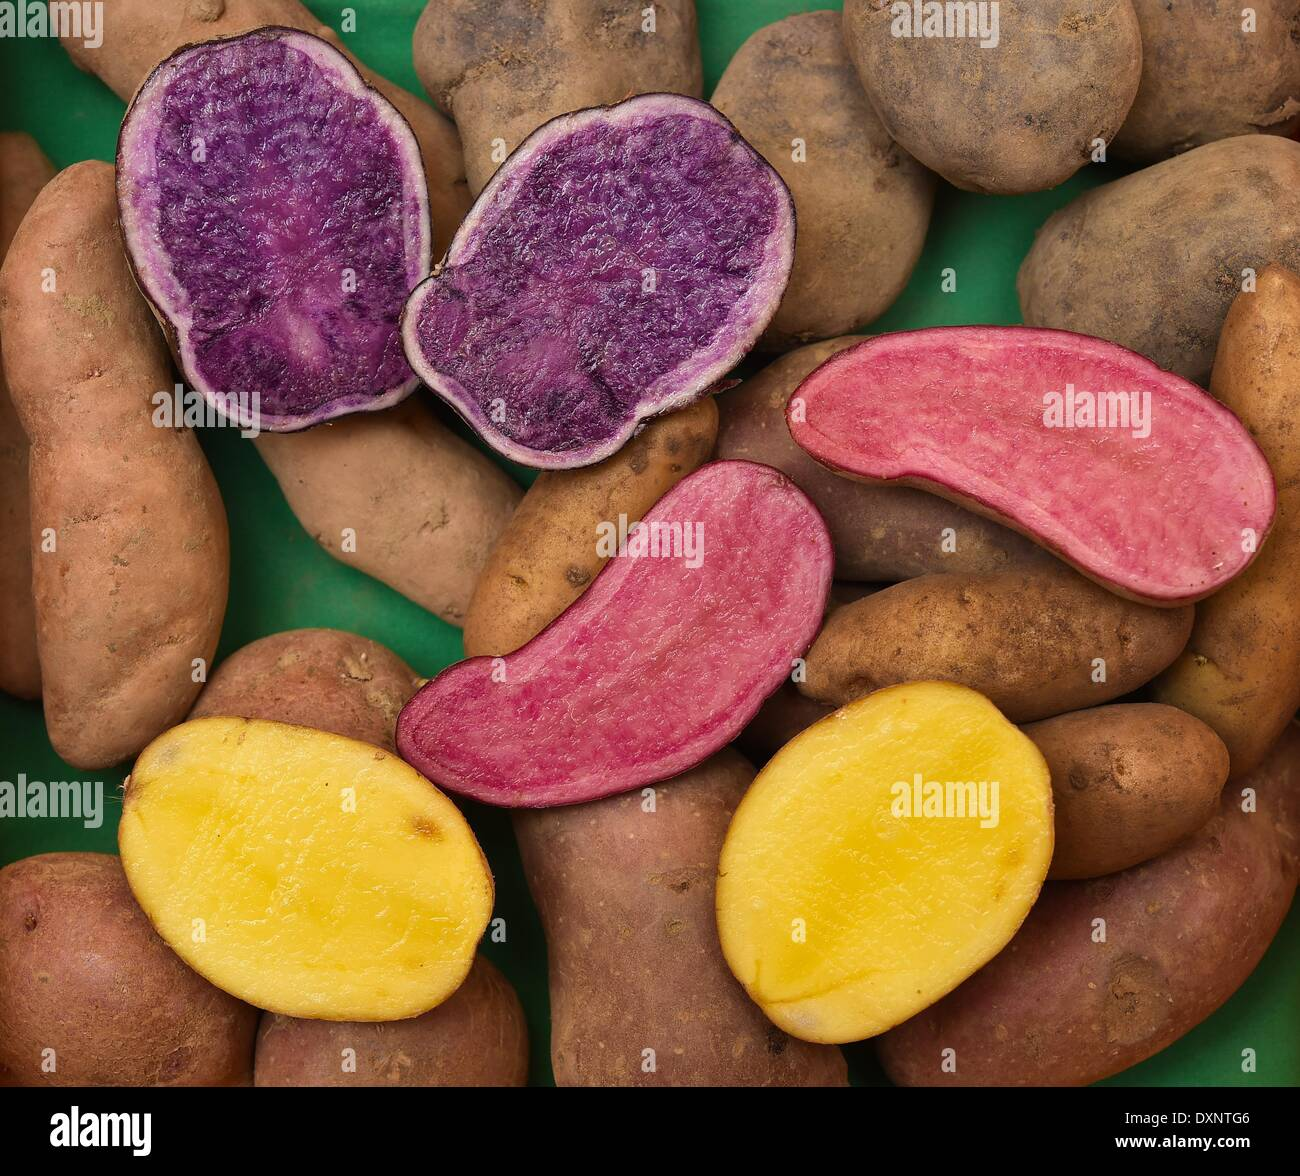 Different types of potatoes including Siglinde (yellow), Blue ...